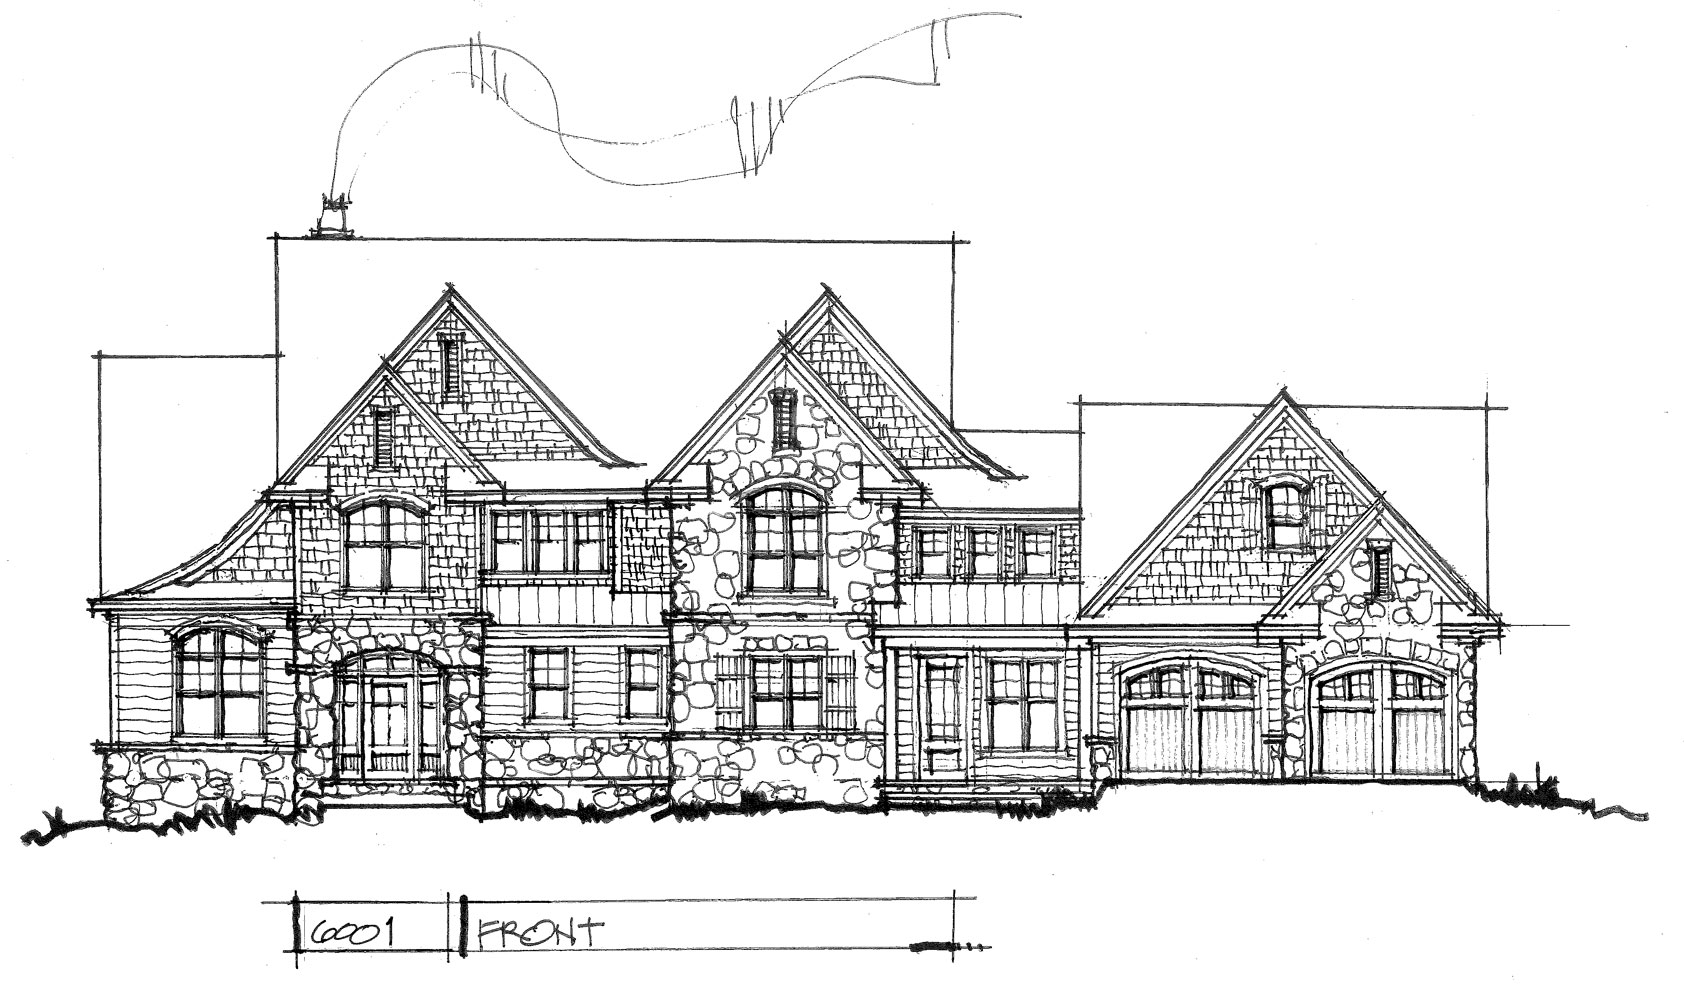 Check out the front elevation of house plan 6001.